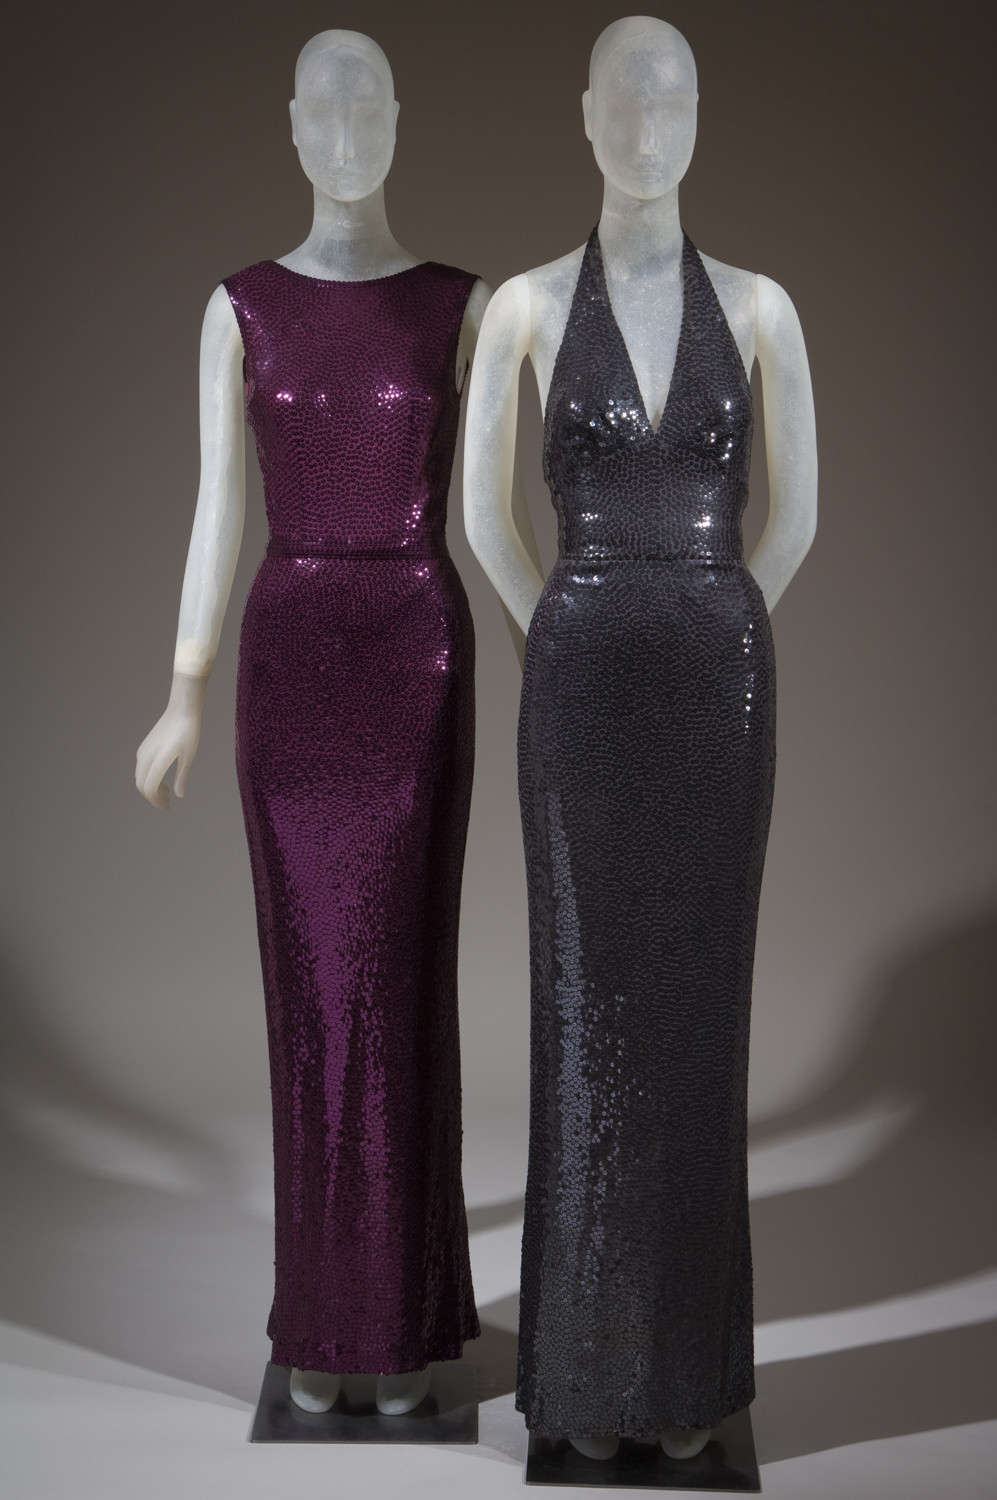 American fashion designer Norman Norell might have been best known for his 'mermaid' gowns, which included a strong use of sequins. These are two out of the roughly 100 pieces by the designer on display between Feb. 9 and April 14, part of an exhibition on Norell.